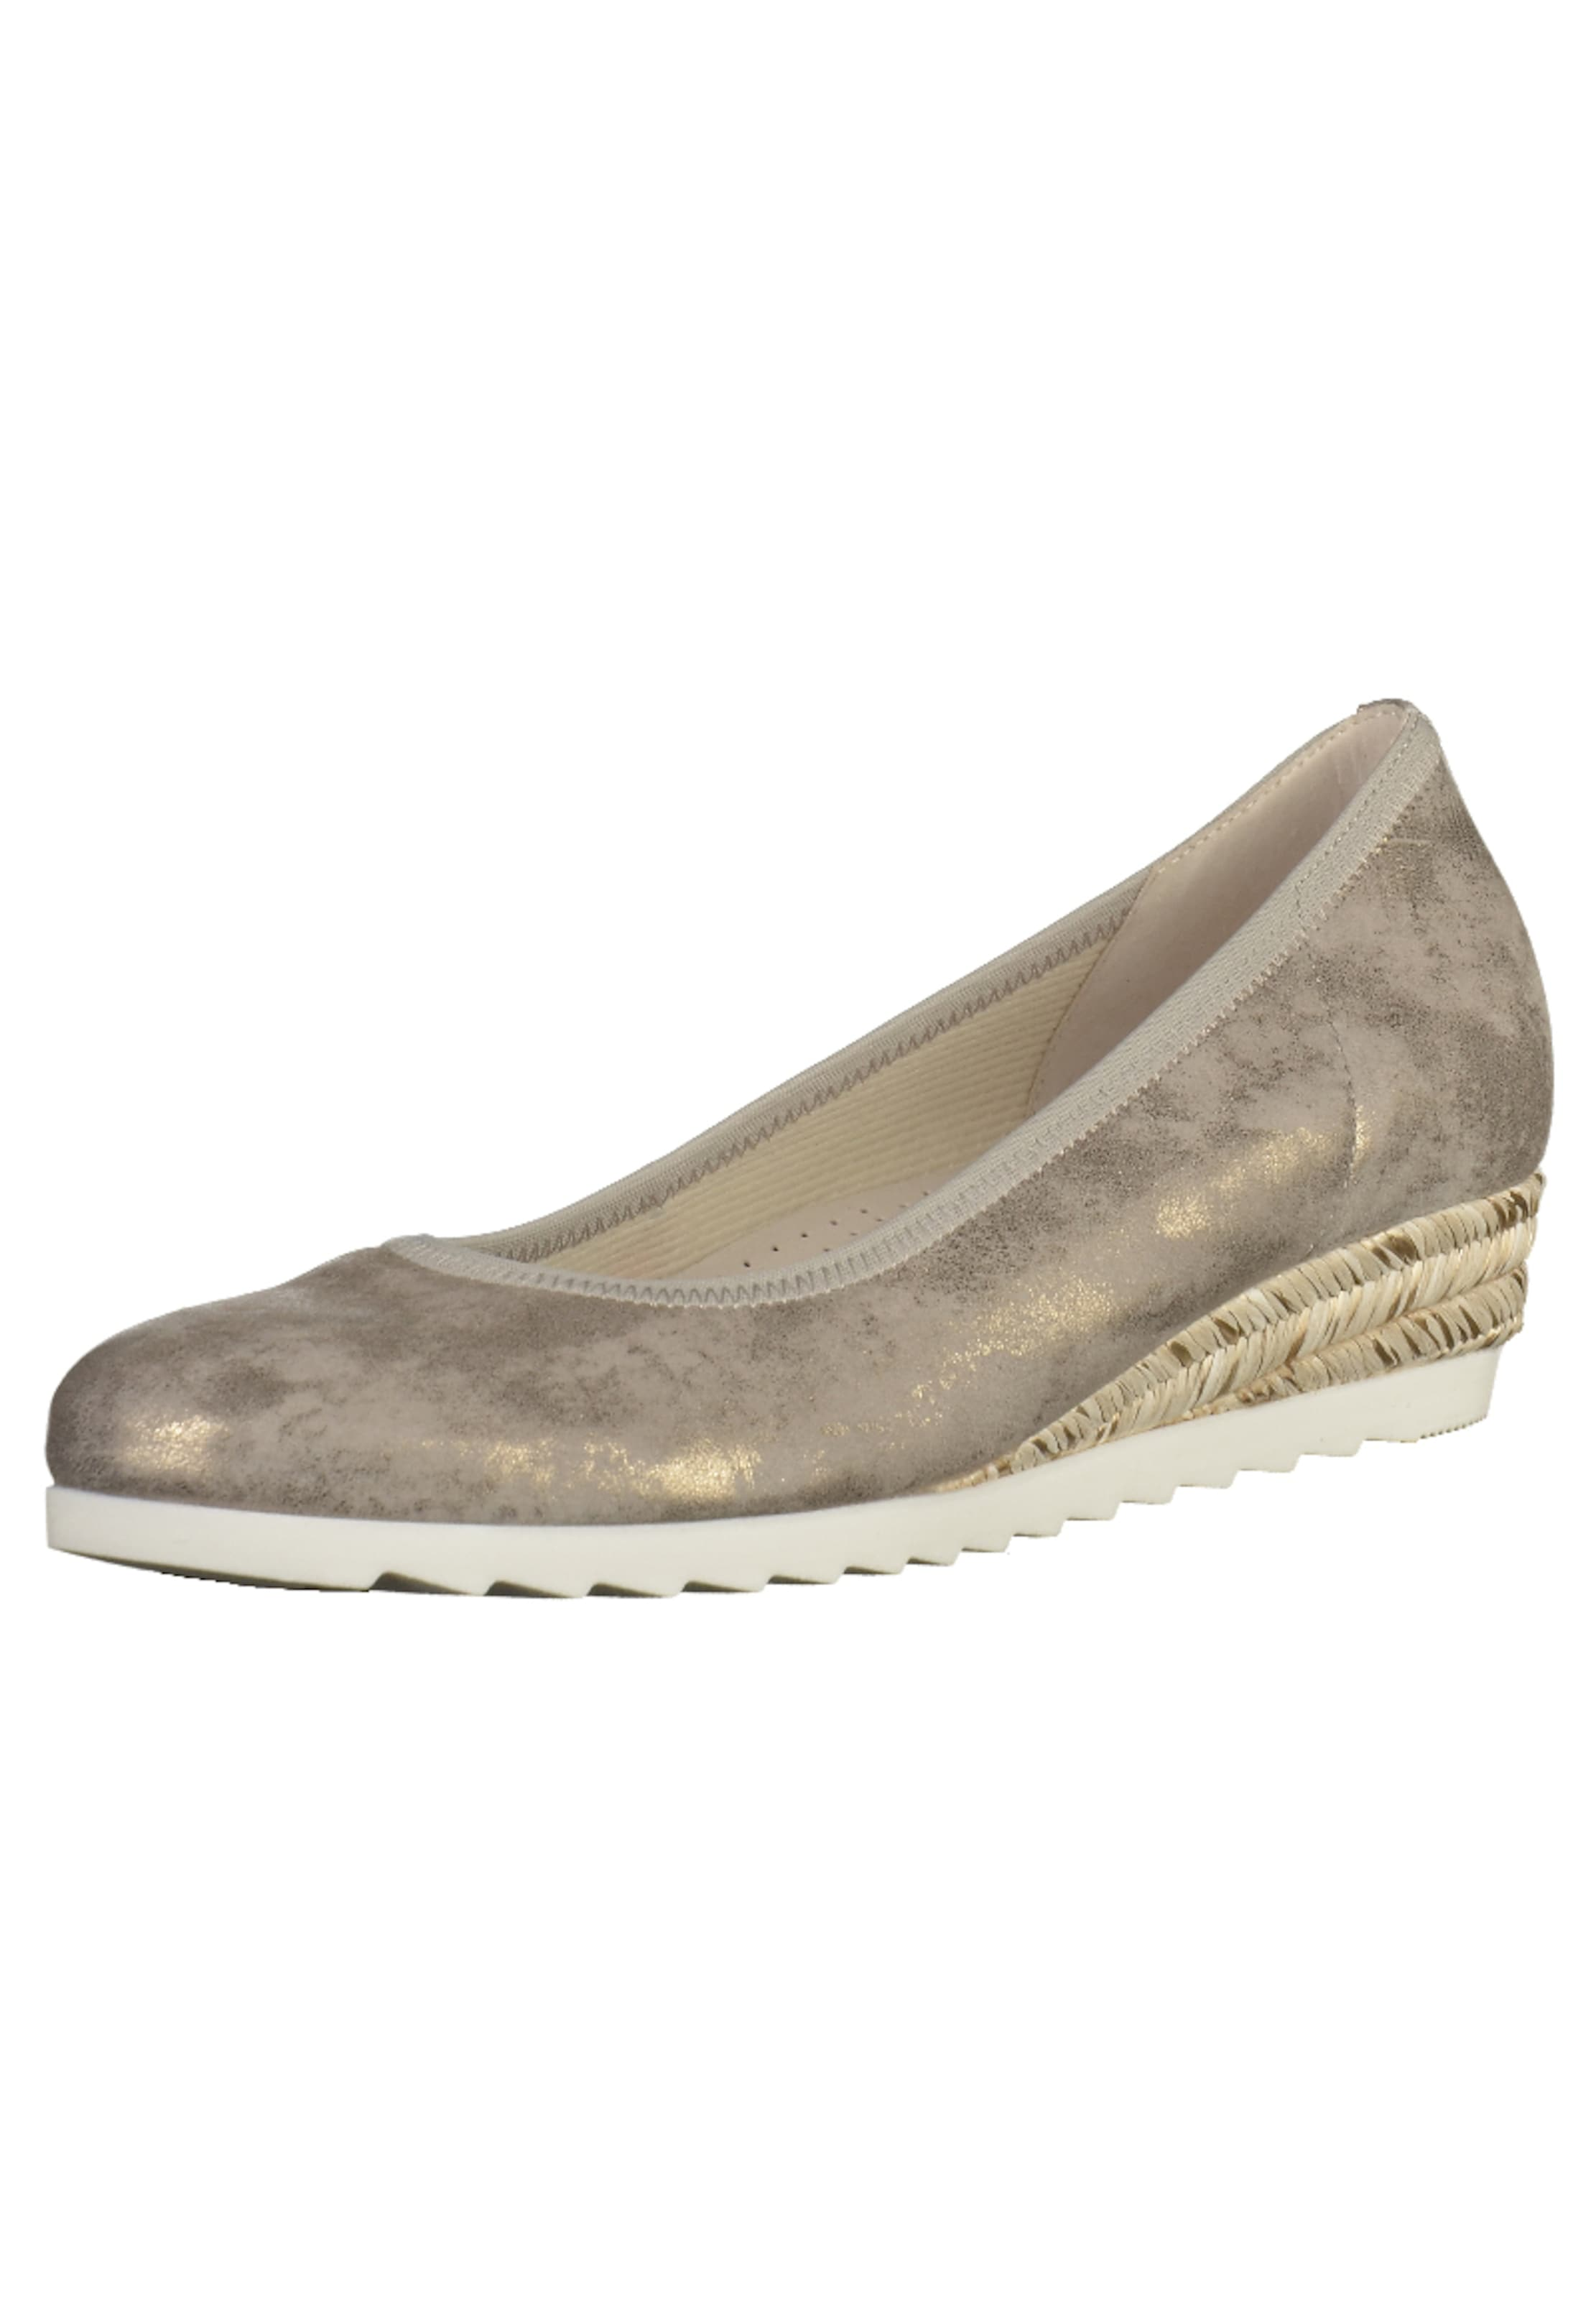 Pumps Taupe Gabor Pumps In Taupe Gabor In Gabor 4A3RjLq5